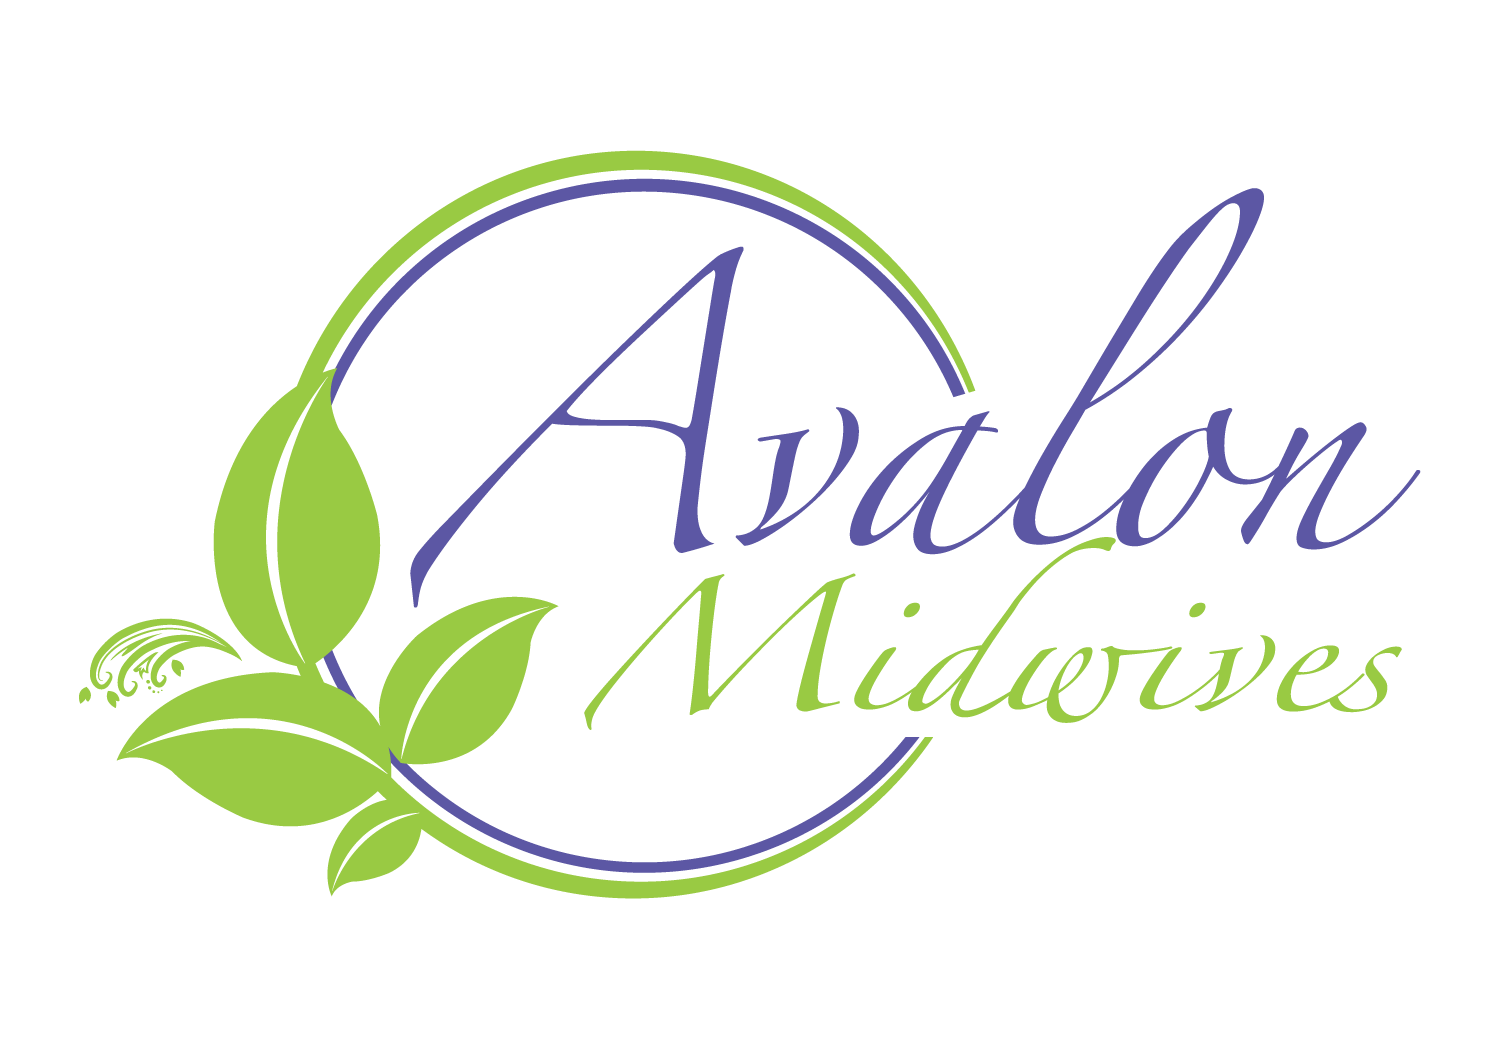 Avalon Midwives-01.png